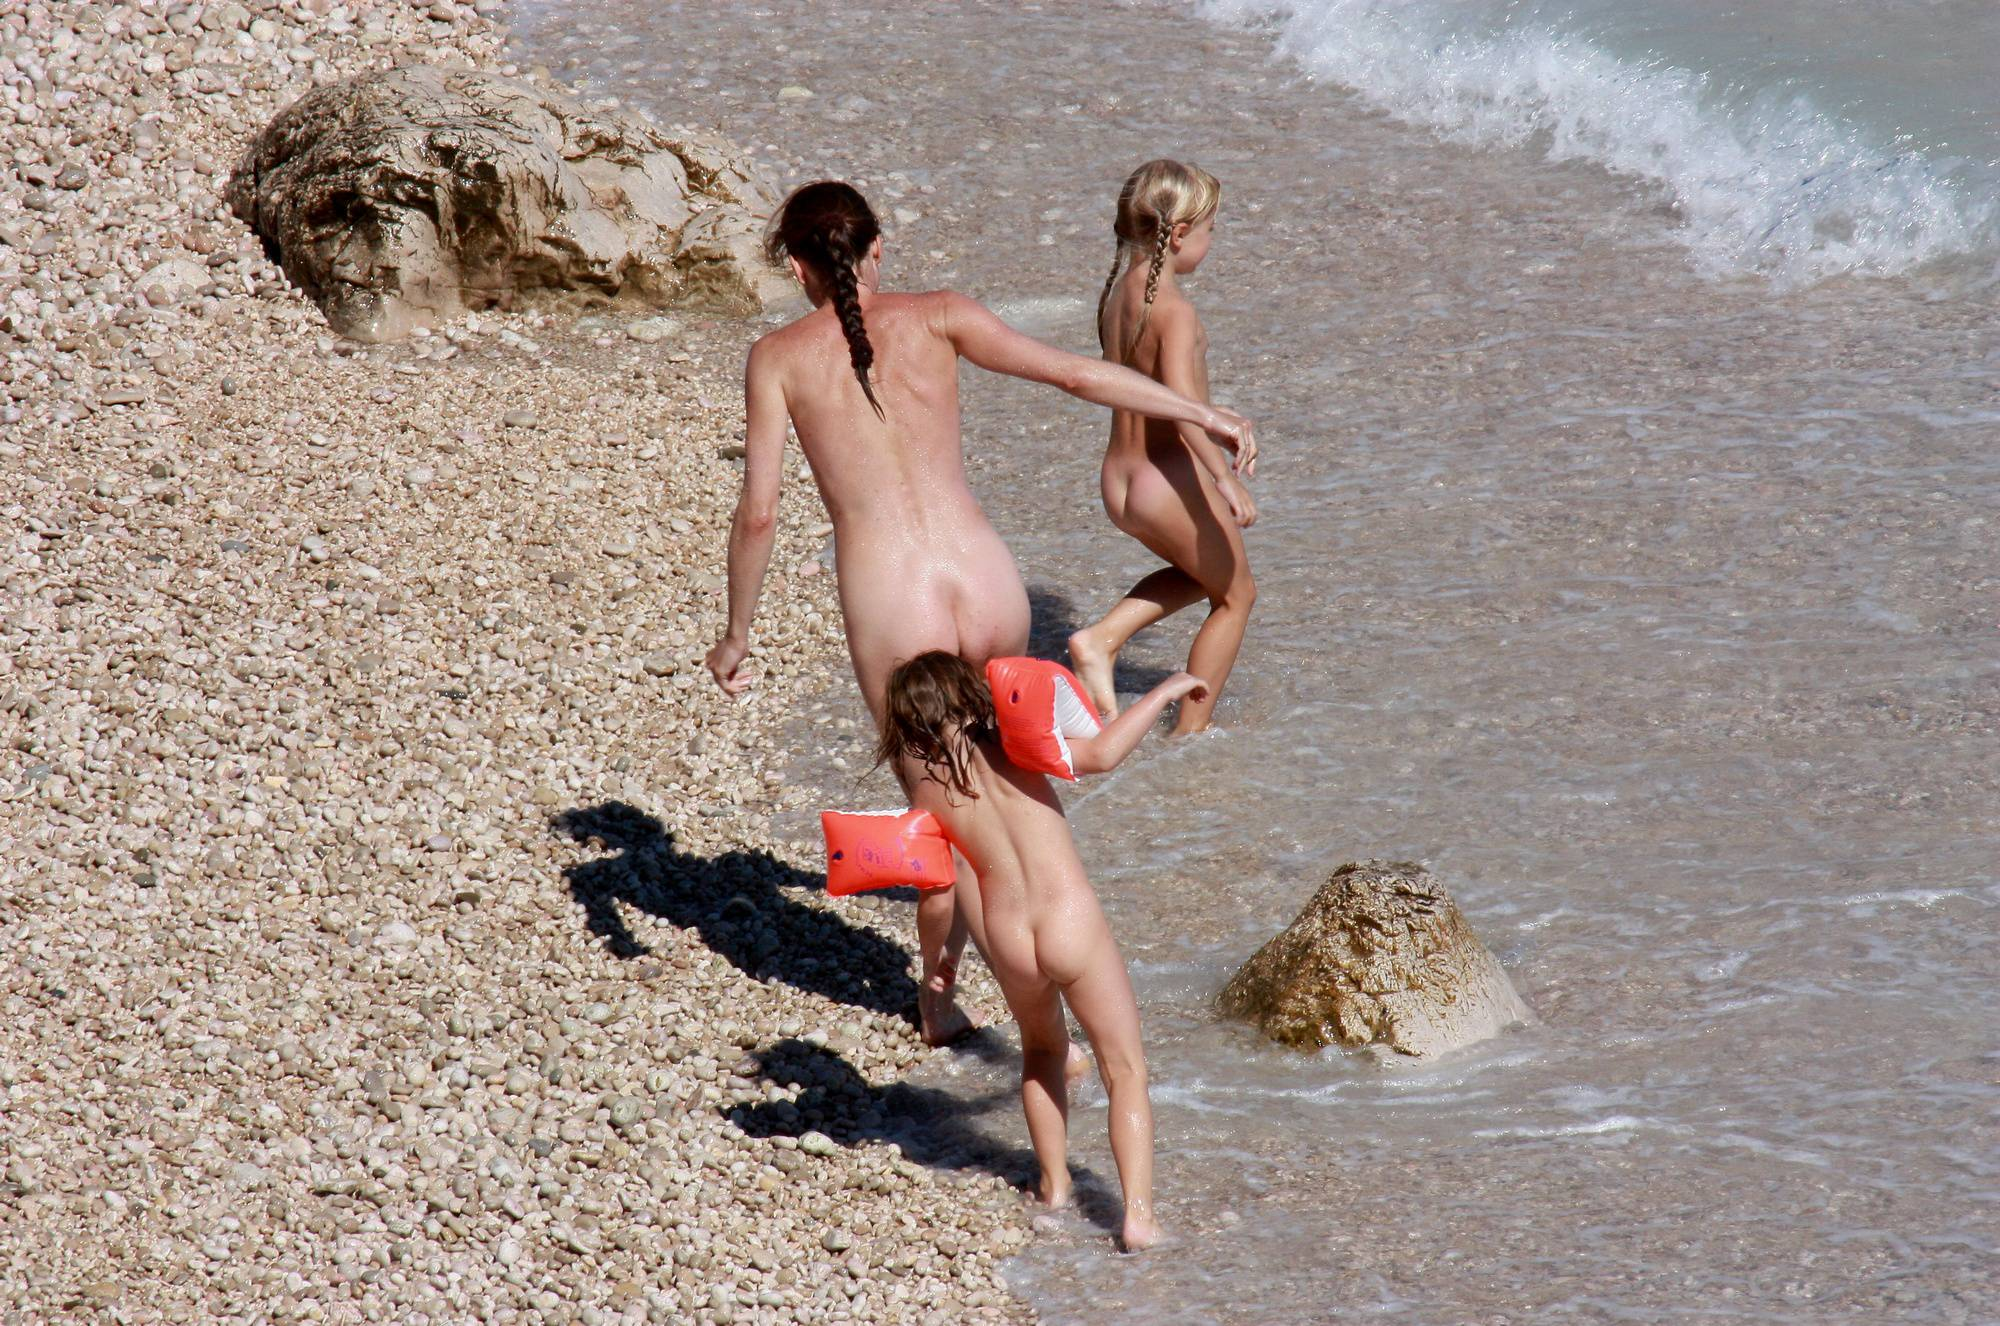 Nudist Pictures Getting Out of the Waters - 1